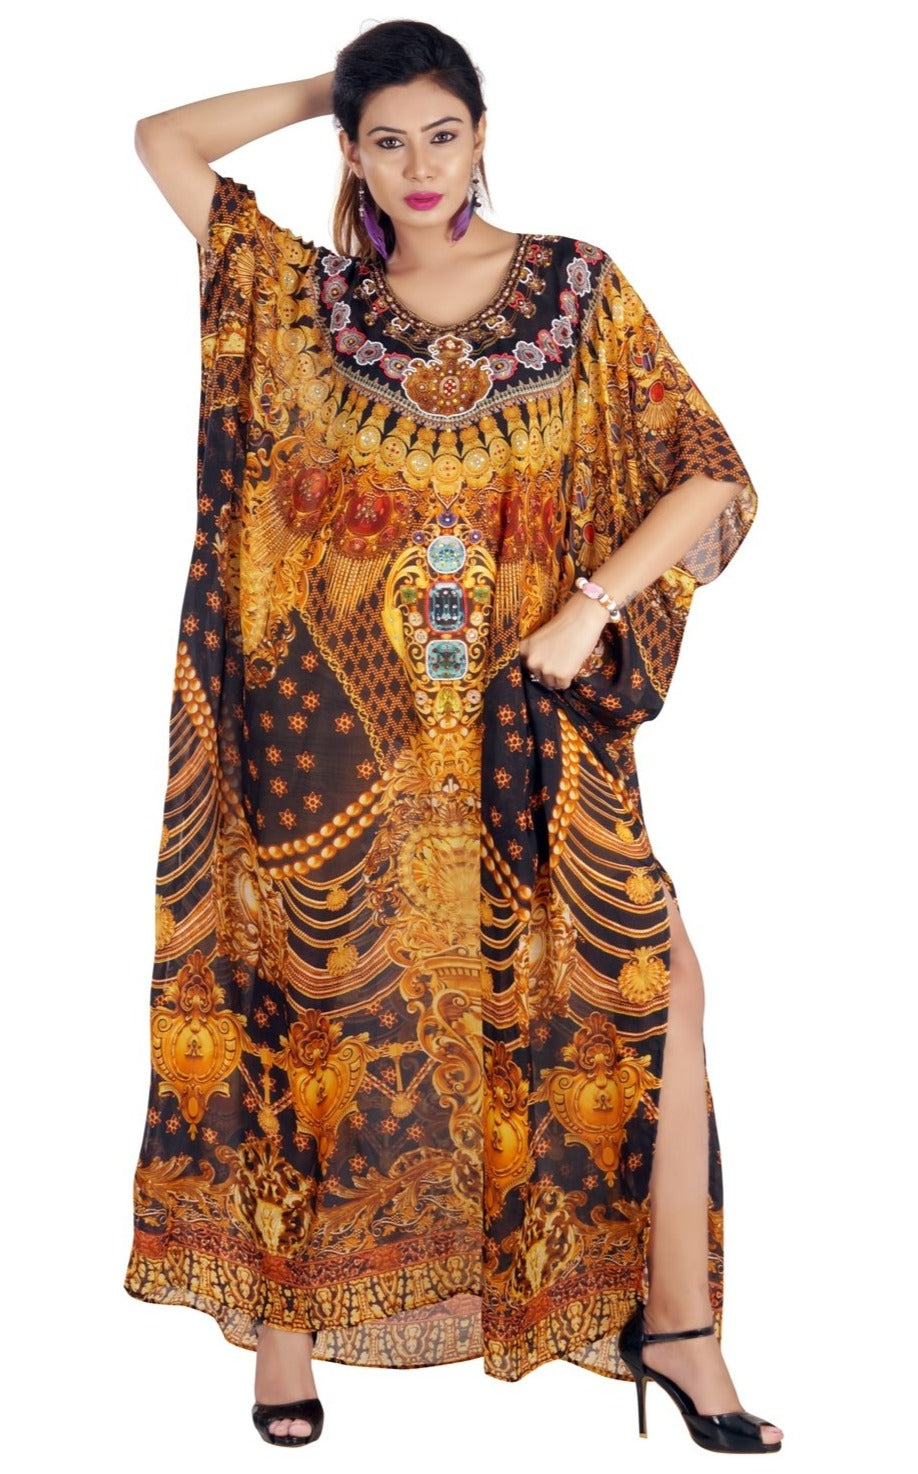 Divine Baroque Scroll Print over Silk Kaftan in golden color devotional style - Silk kaftan